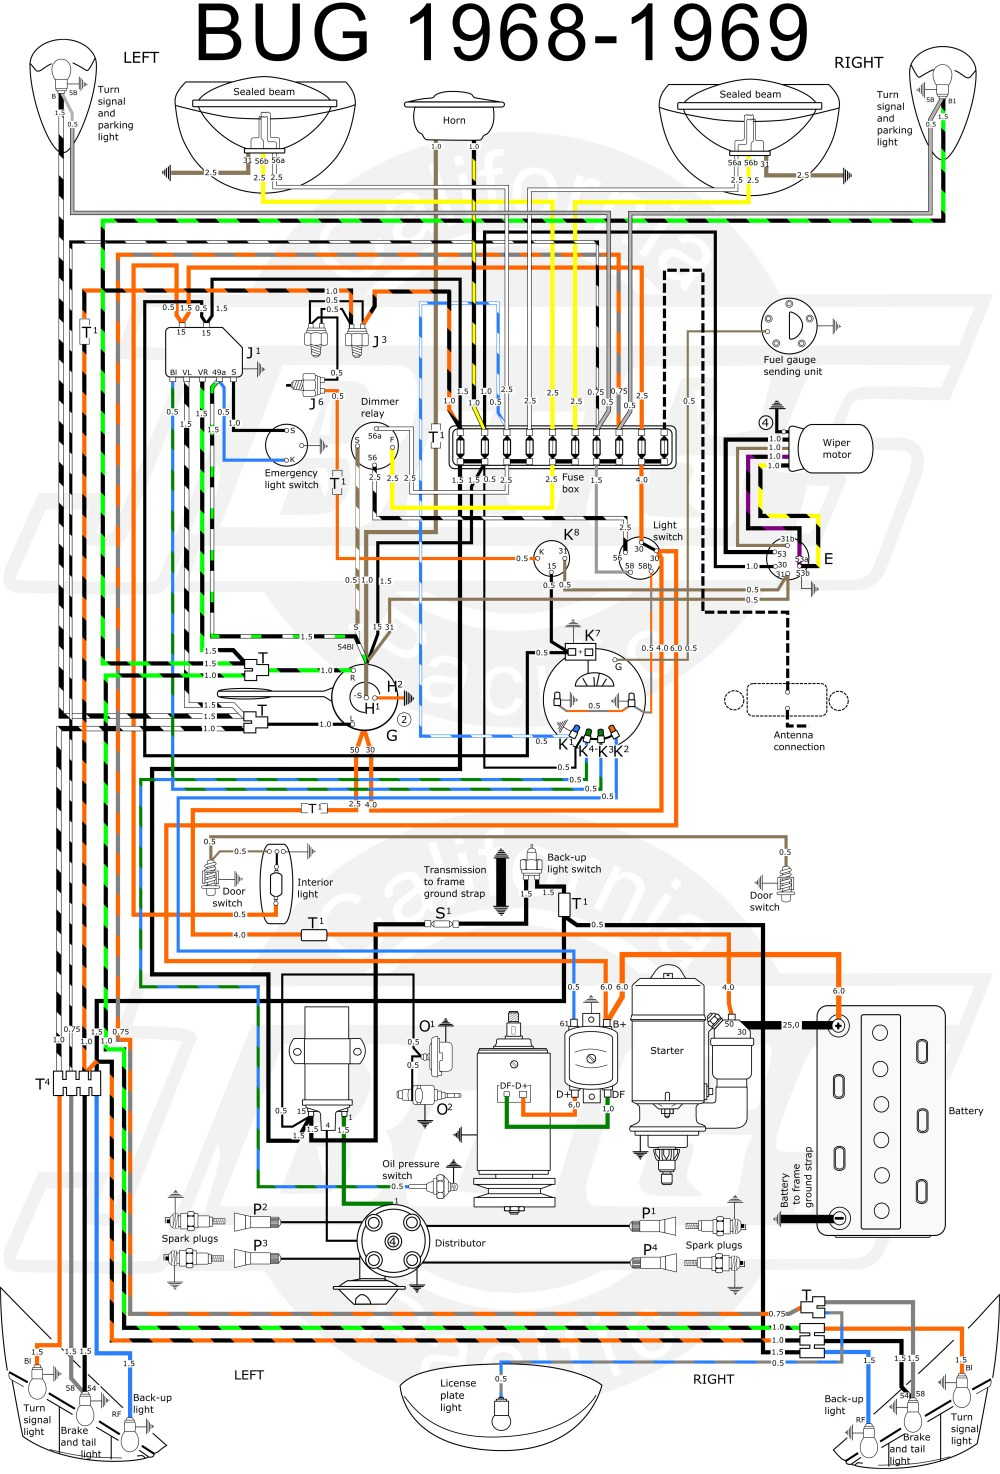 medium resolution of 1968 datsun wiring diagram blog wiring diagram 1968 datsun wiring diagram